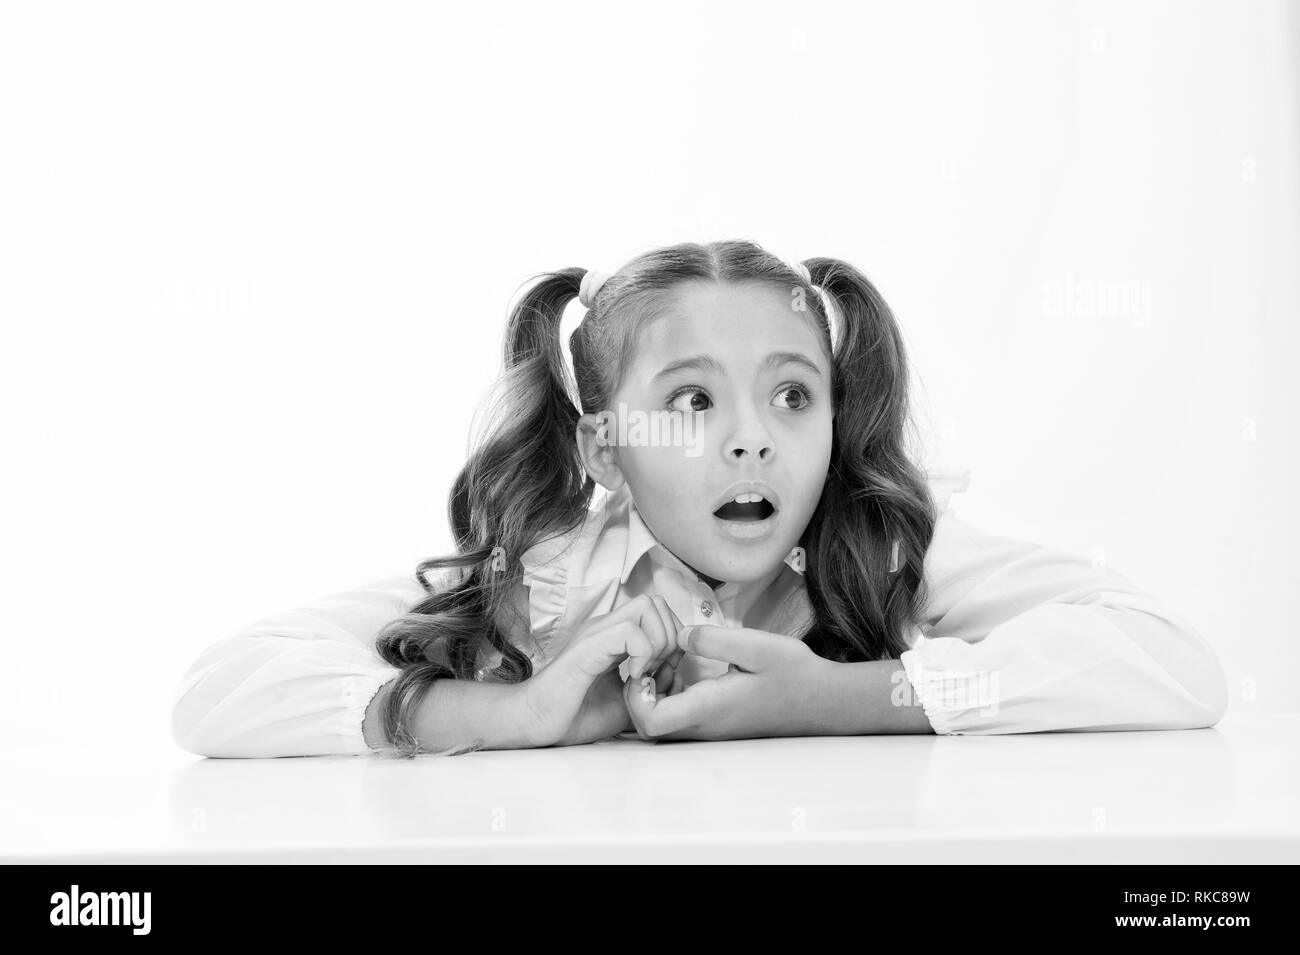 Pupil lean desk isolated white. Perfect schoolgirl tidy fancy hair. School as stranger environment. Prepare kid first school day. Schoolgirl stressful scared worrying face. Stressful event for her. - Stock Image